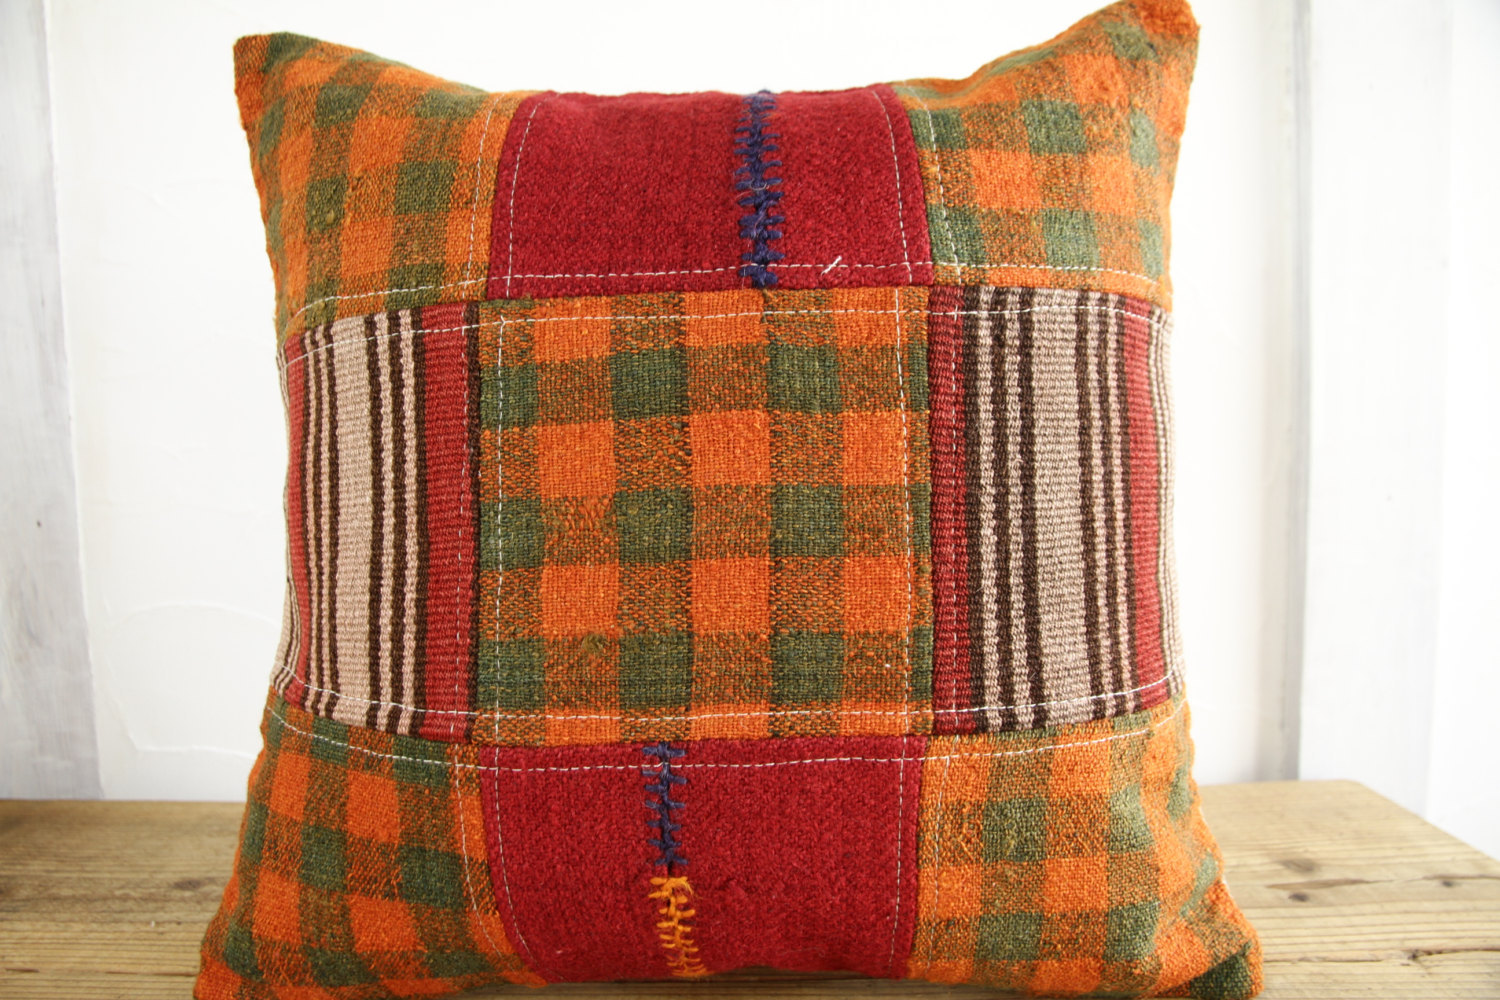 Kilim Pillows |18x18| Decorative Pillows | 380 | Accent Pillows, Kilim cushion